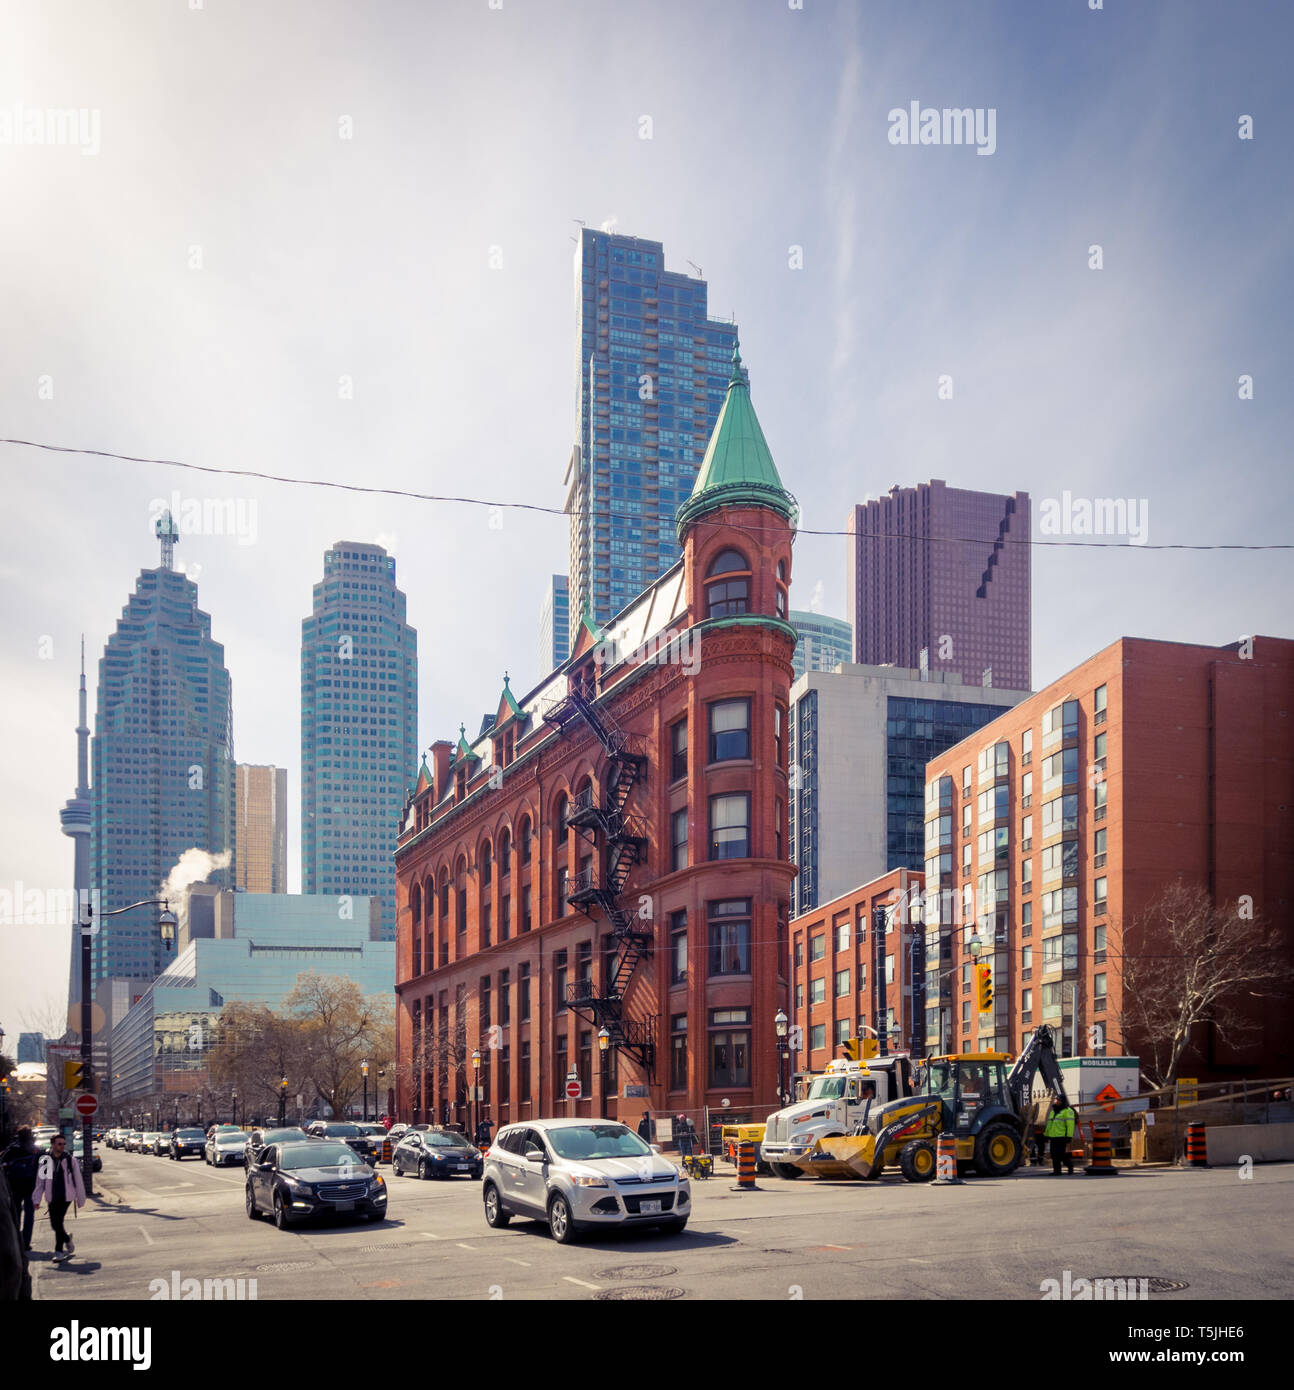 A view of the Gooderham Building (Flatiron Building) with the Financial District in the background. Toronto, Ontario, Canada. - Stock Image